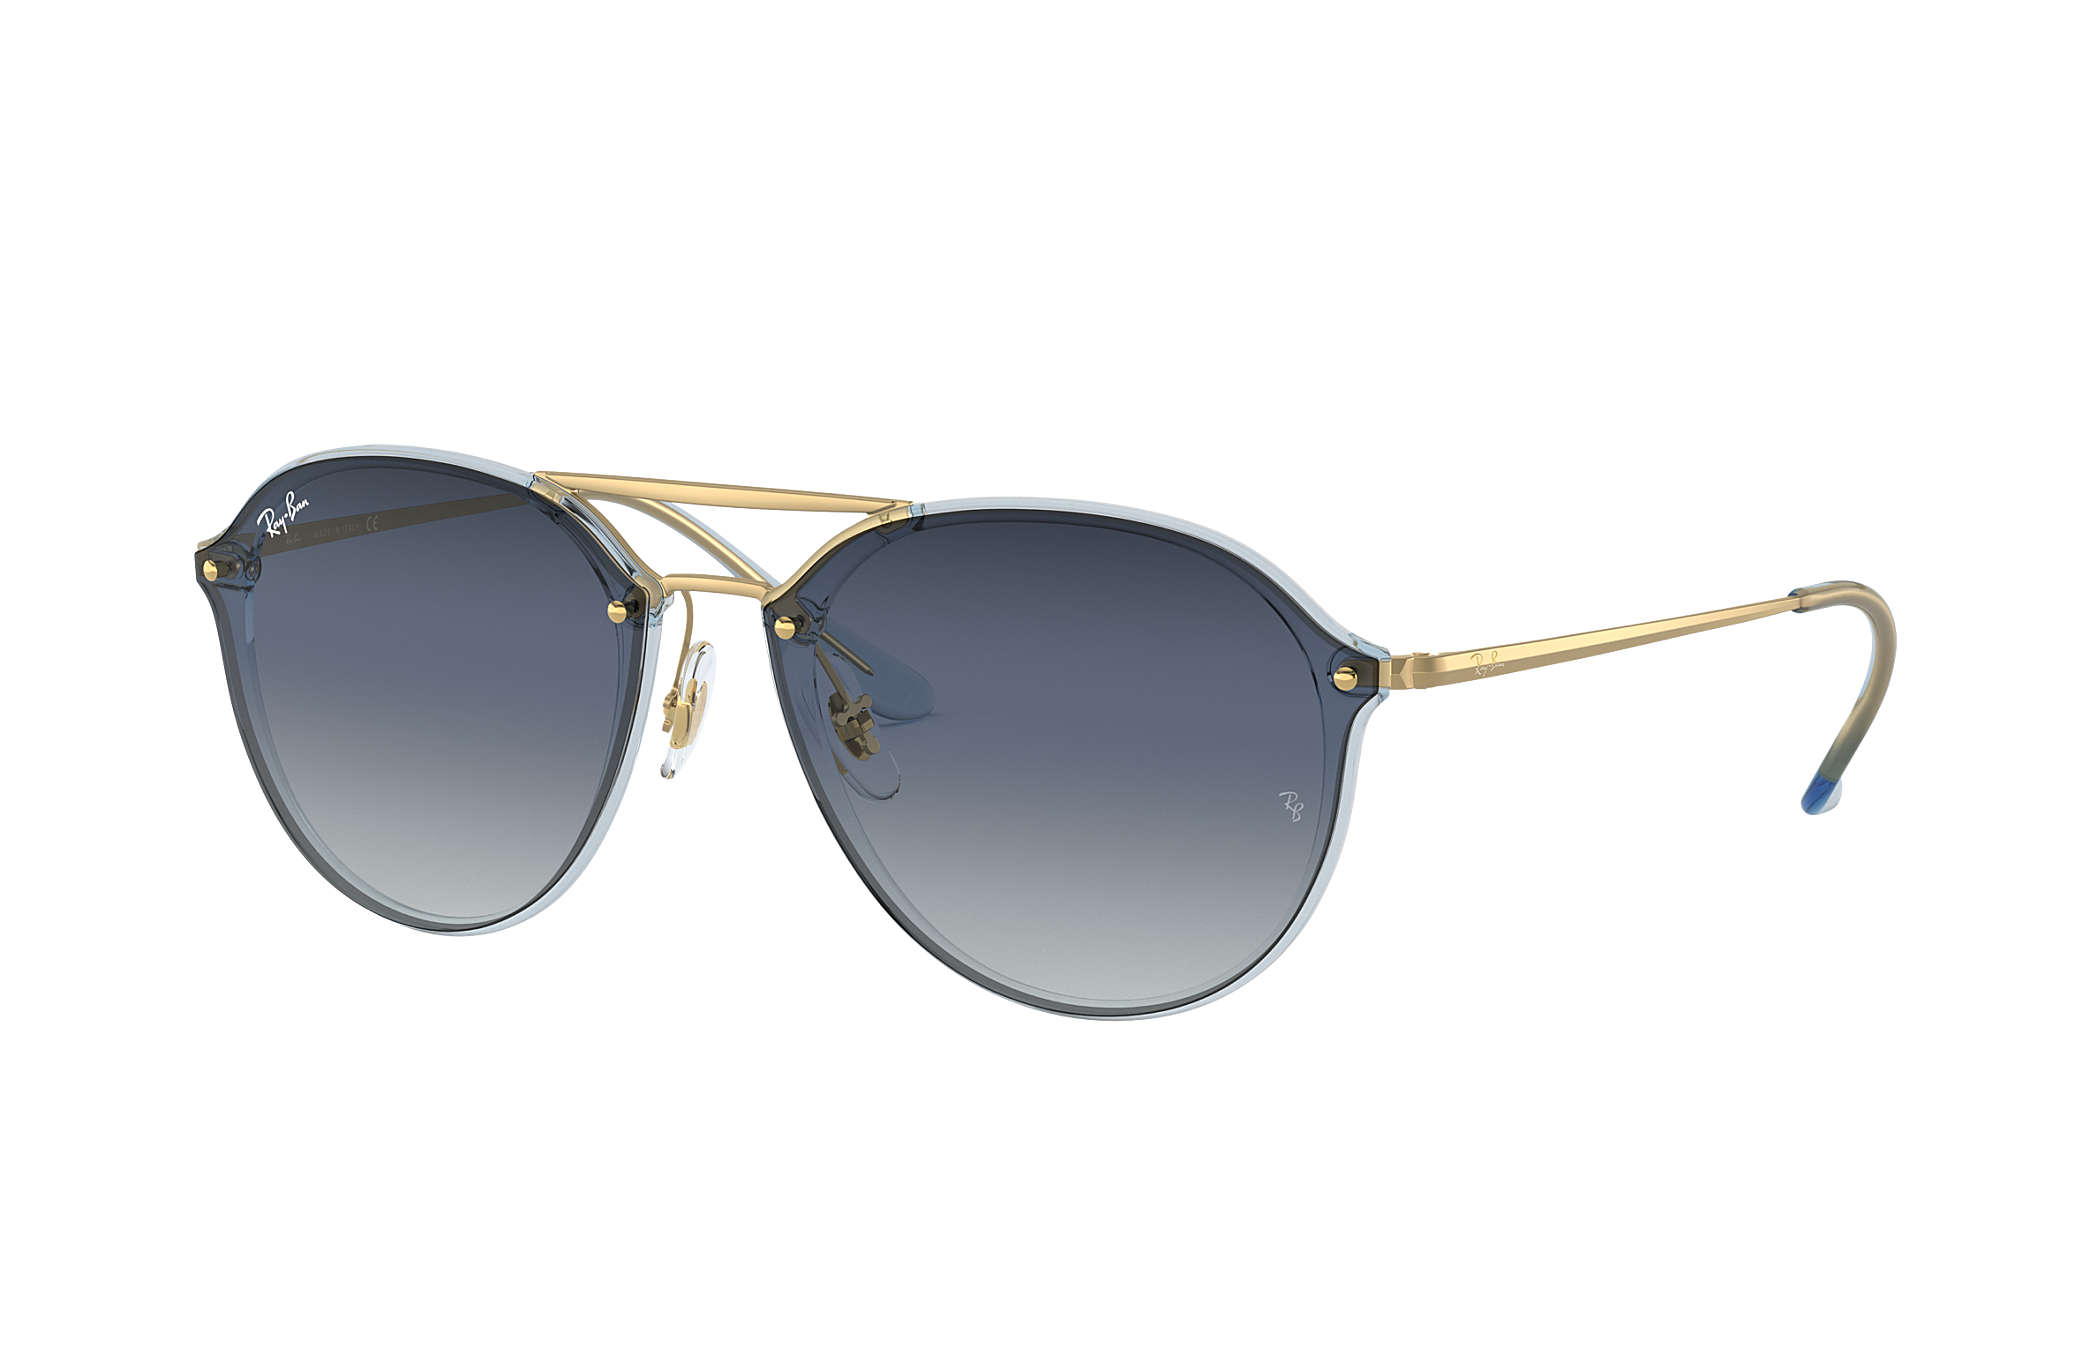 c8c1cbcfc1 Ray-Ban Blaze Double Bridge RB4292N Light Blue - Injected - Blue ...